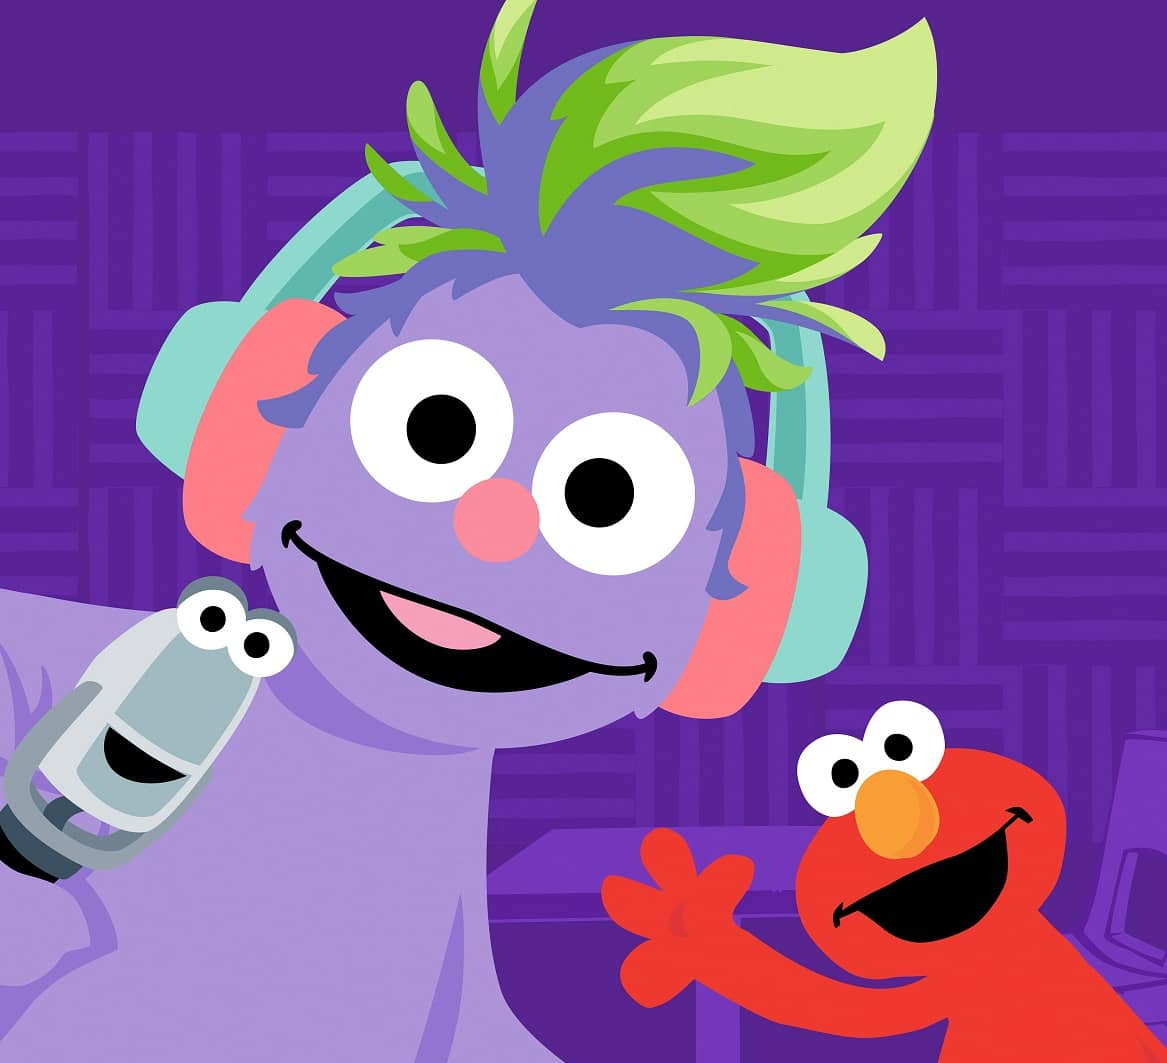 'SESAME STREET' LAUNCHES A PODCAST TO HELP EDUCATE KIDS